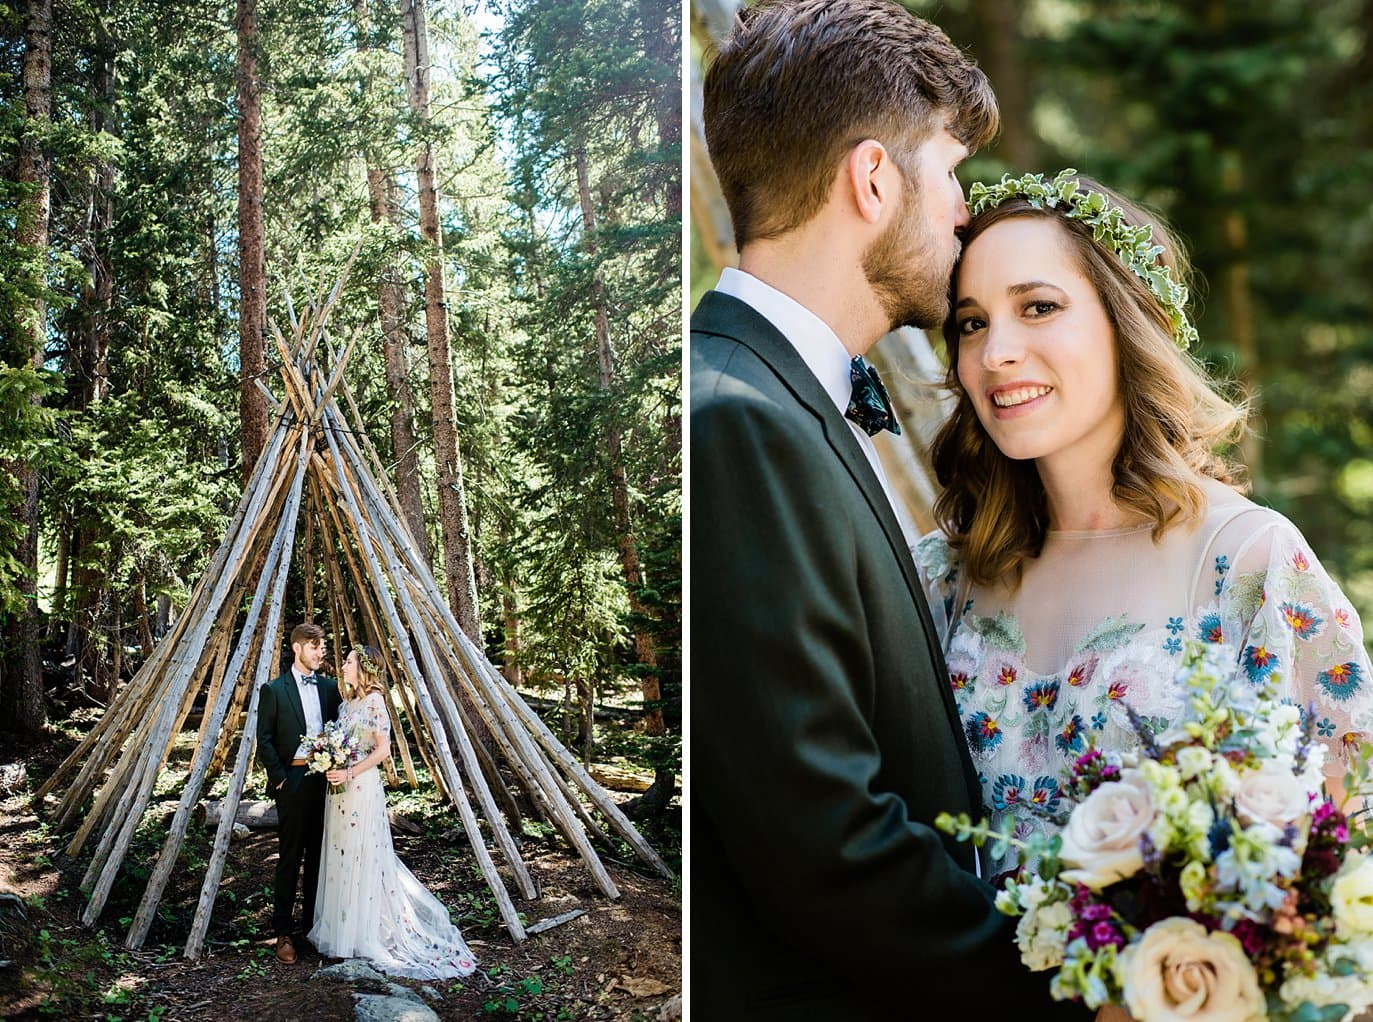 bride and groom in stick teepee at base of Arapahoe Basin at Arapahoe Basin wedding by Breckenridge wedding photographer Jennie Crate